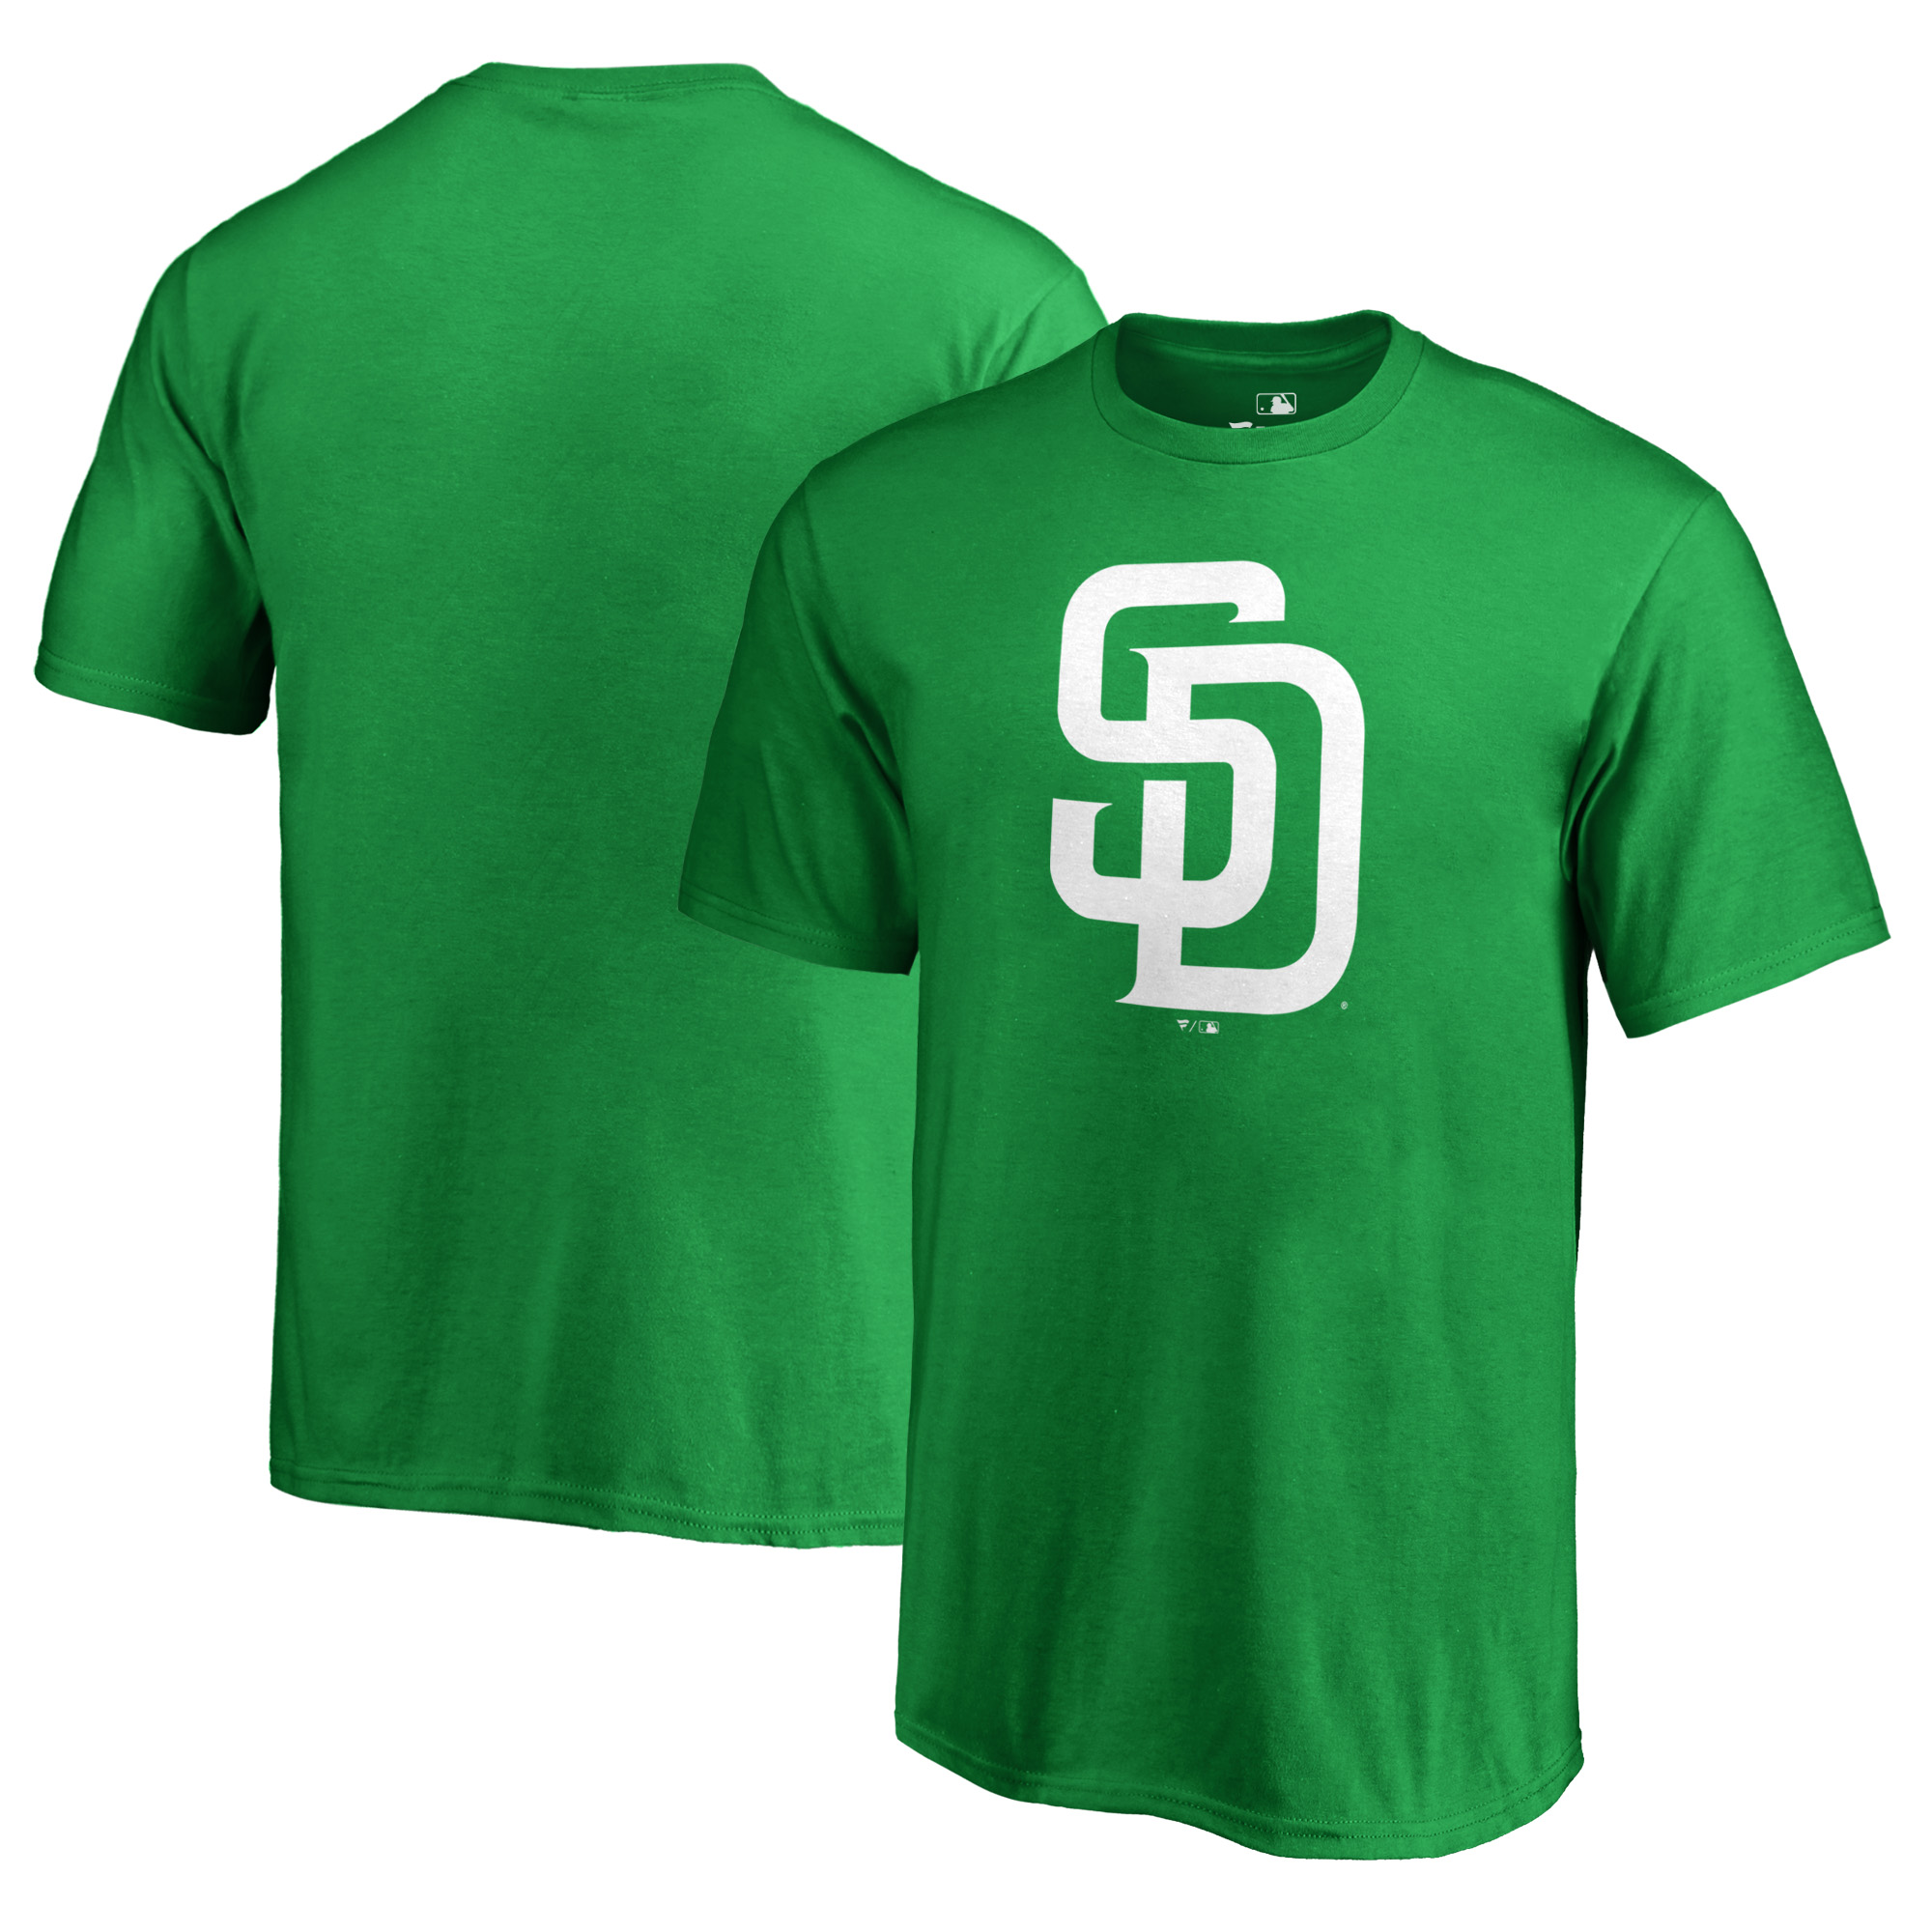 San Diego Padres Fanatics Branded Youth St. Patrick's Day White Logo T-Shirt - Kelly Green